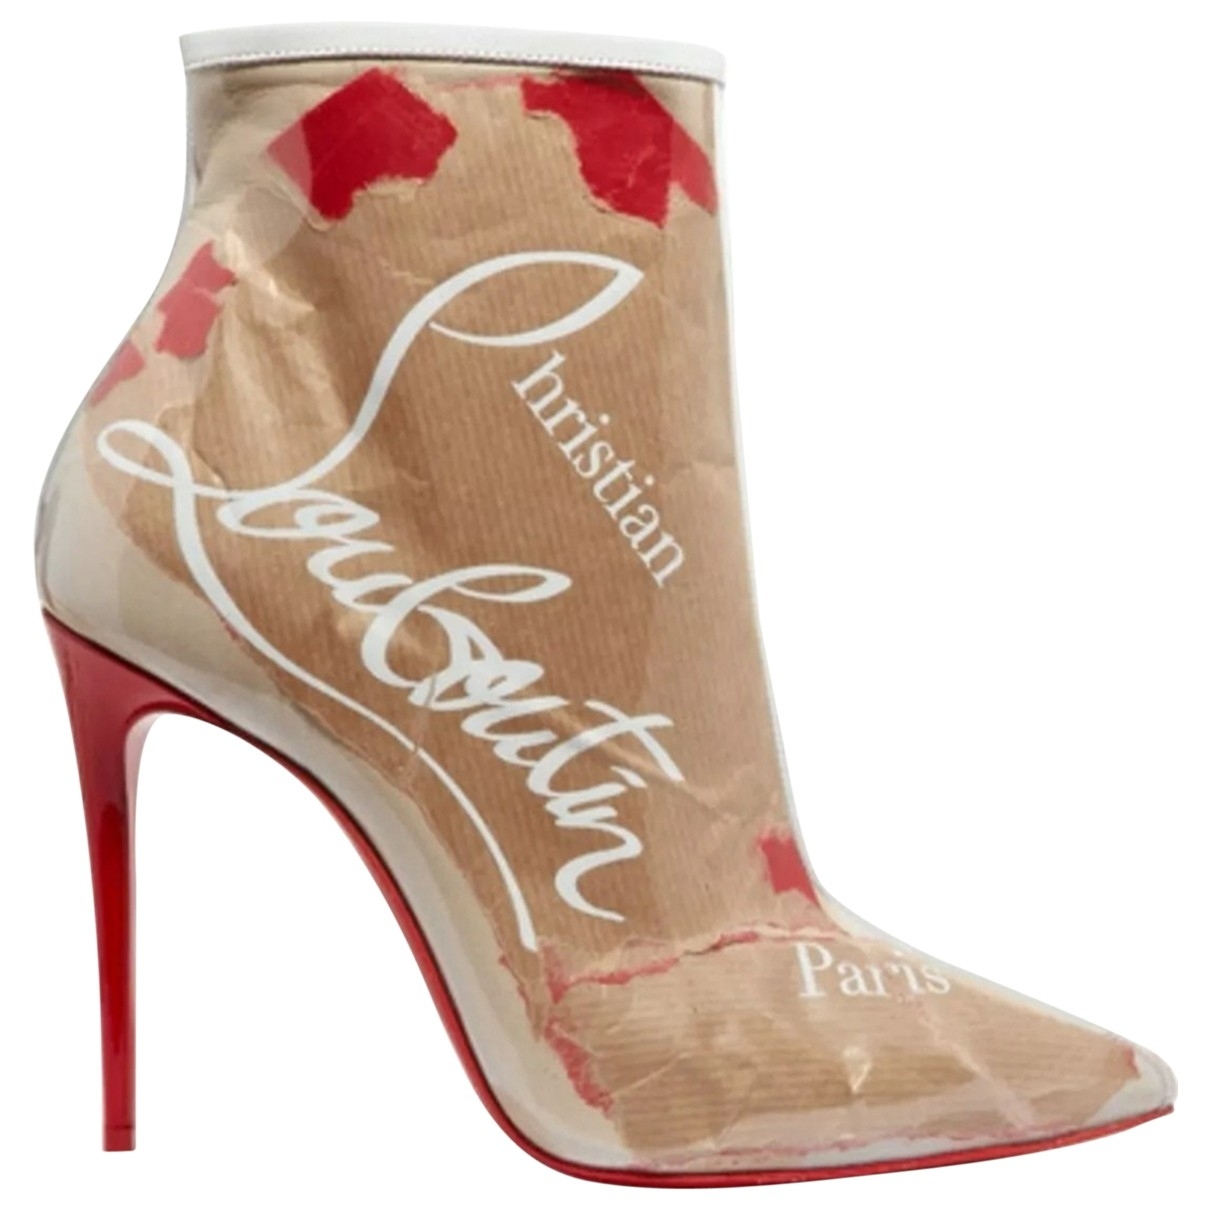 Christian Louboutin So Kate Booty Multicolour Ankle boots for Women 38 EU